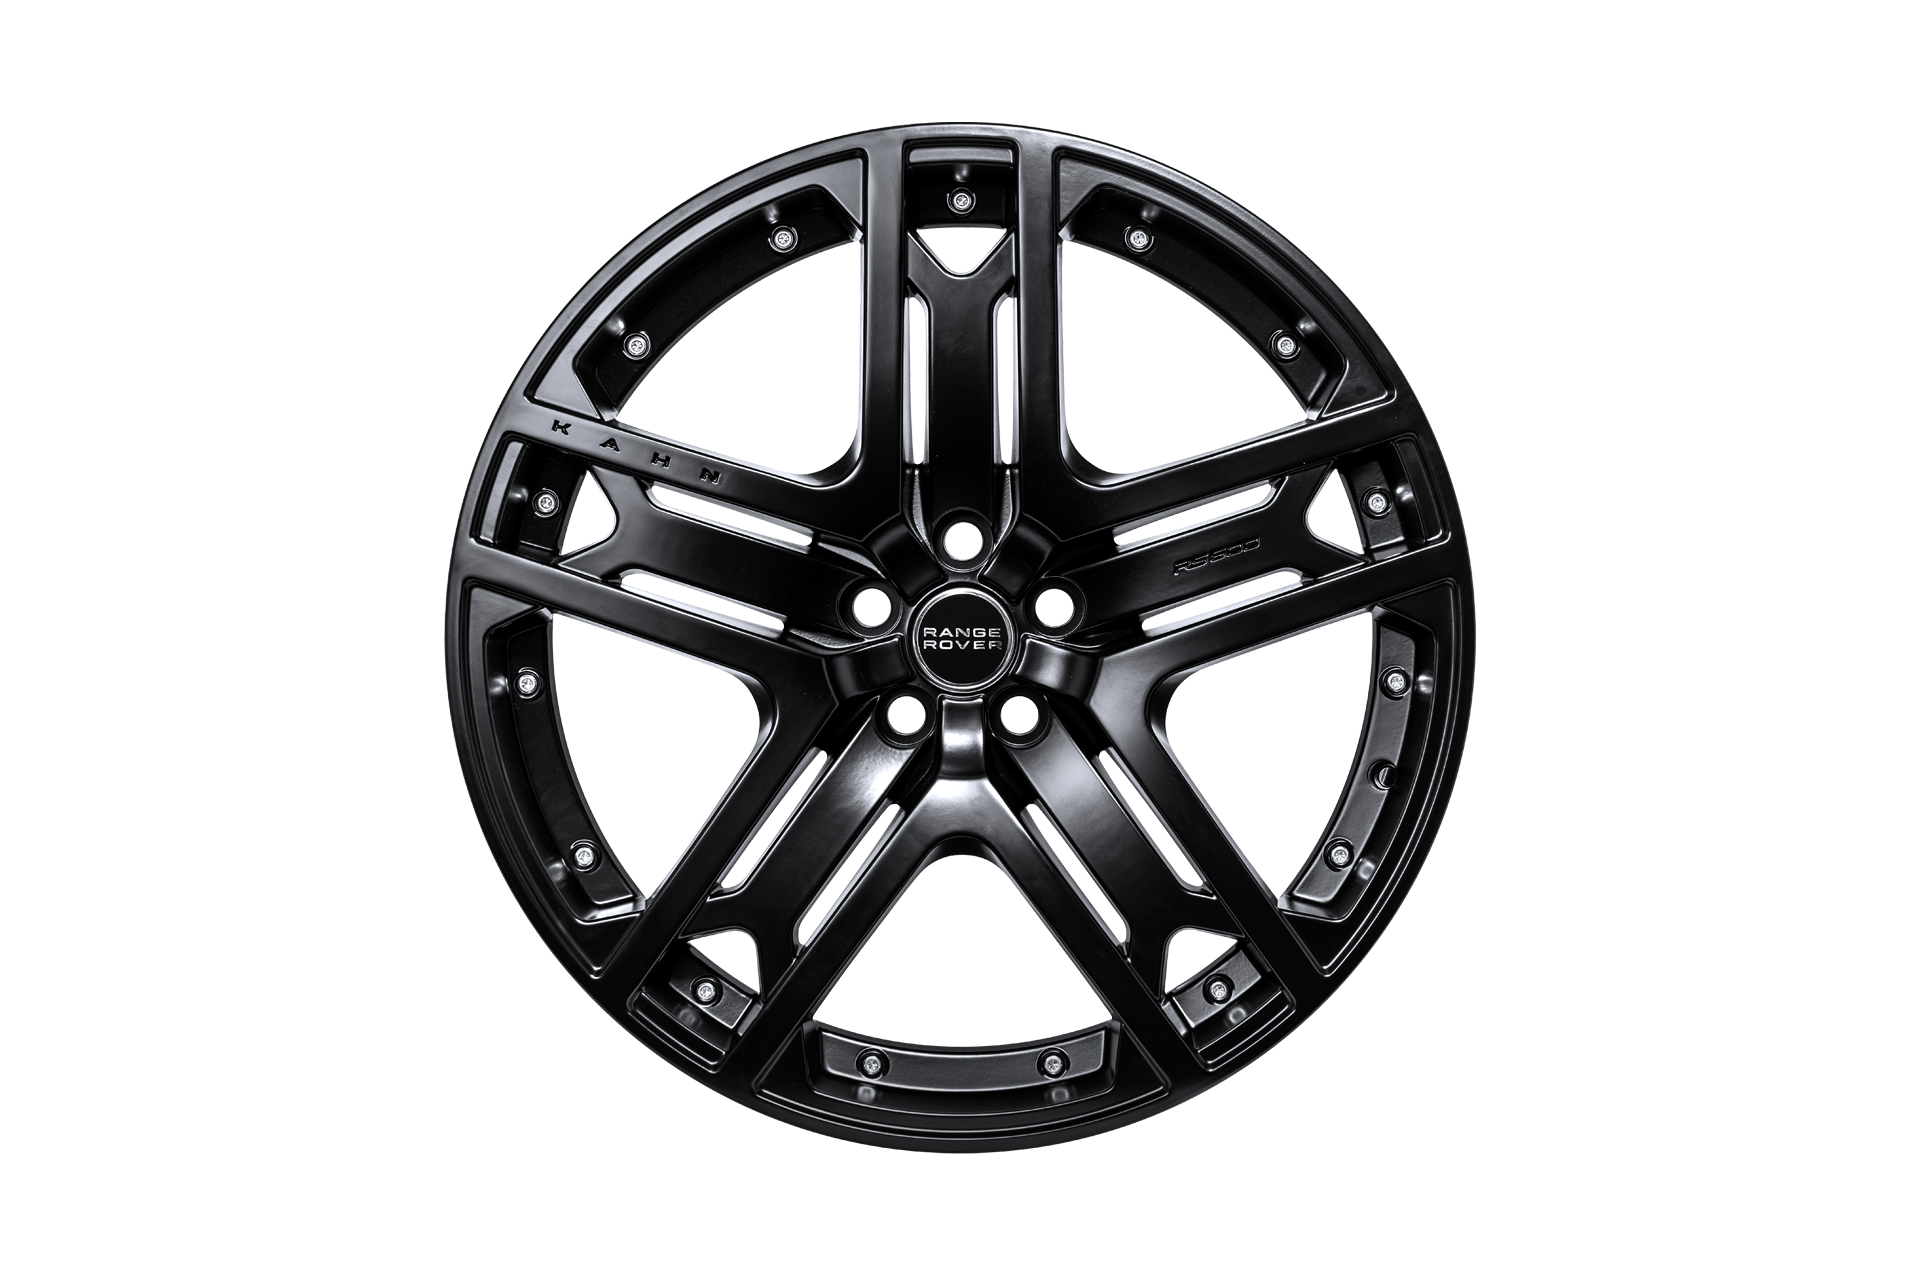 Range Rover Sport Svr (2018-Present) Rs600 Light Alloy Wheels by Kahn - Image 3305